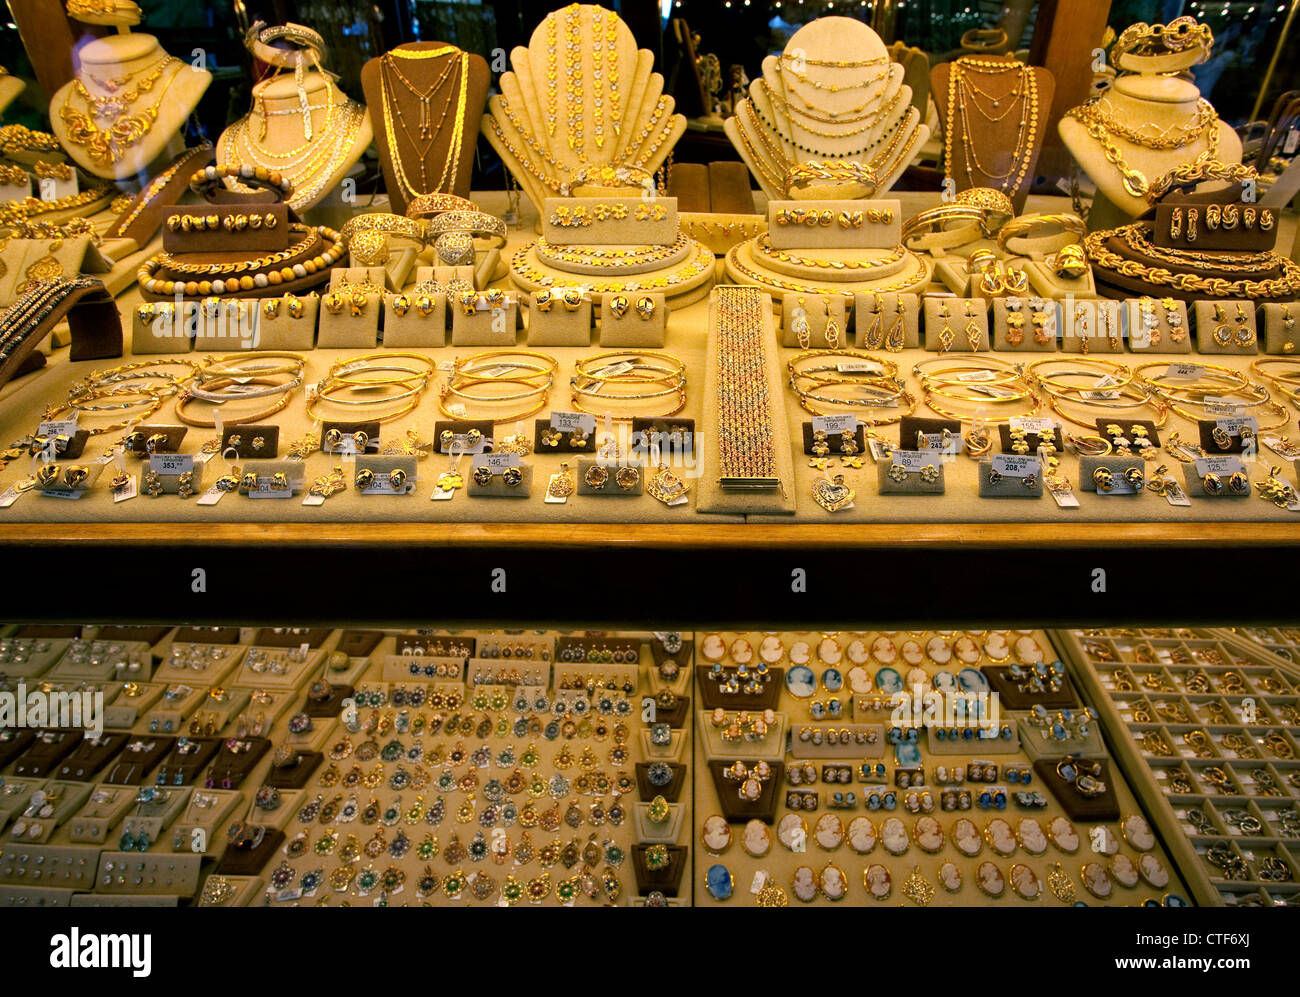 jewelry in shop window on ponte vecchio florence italy